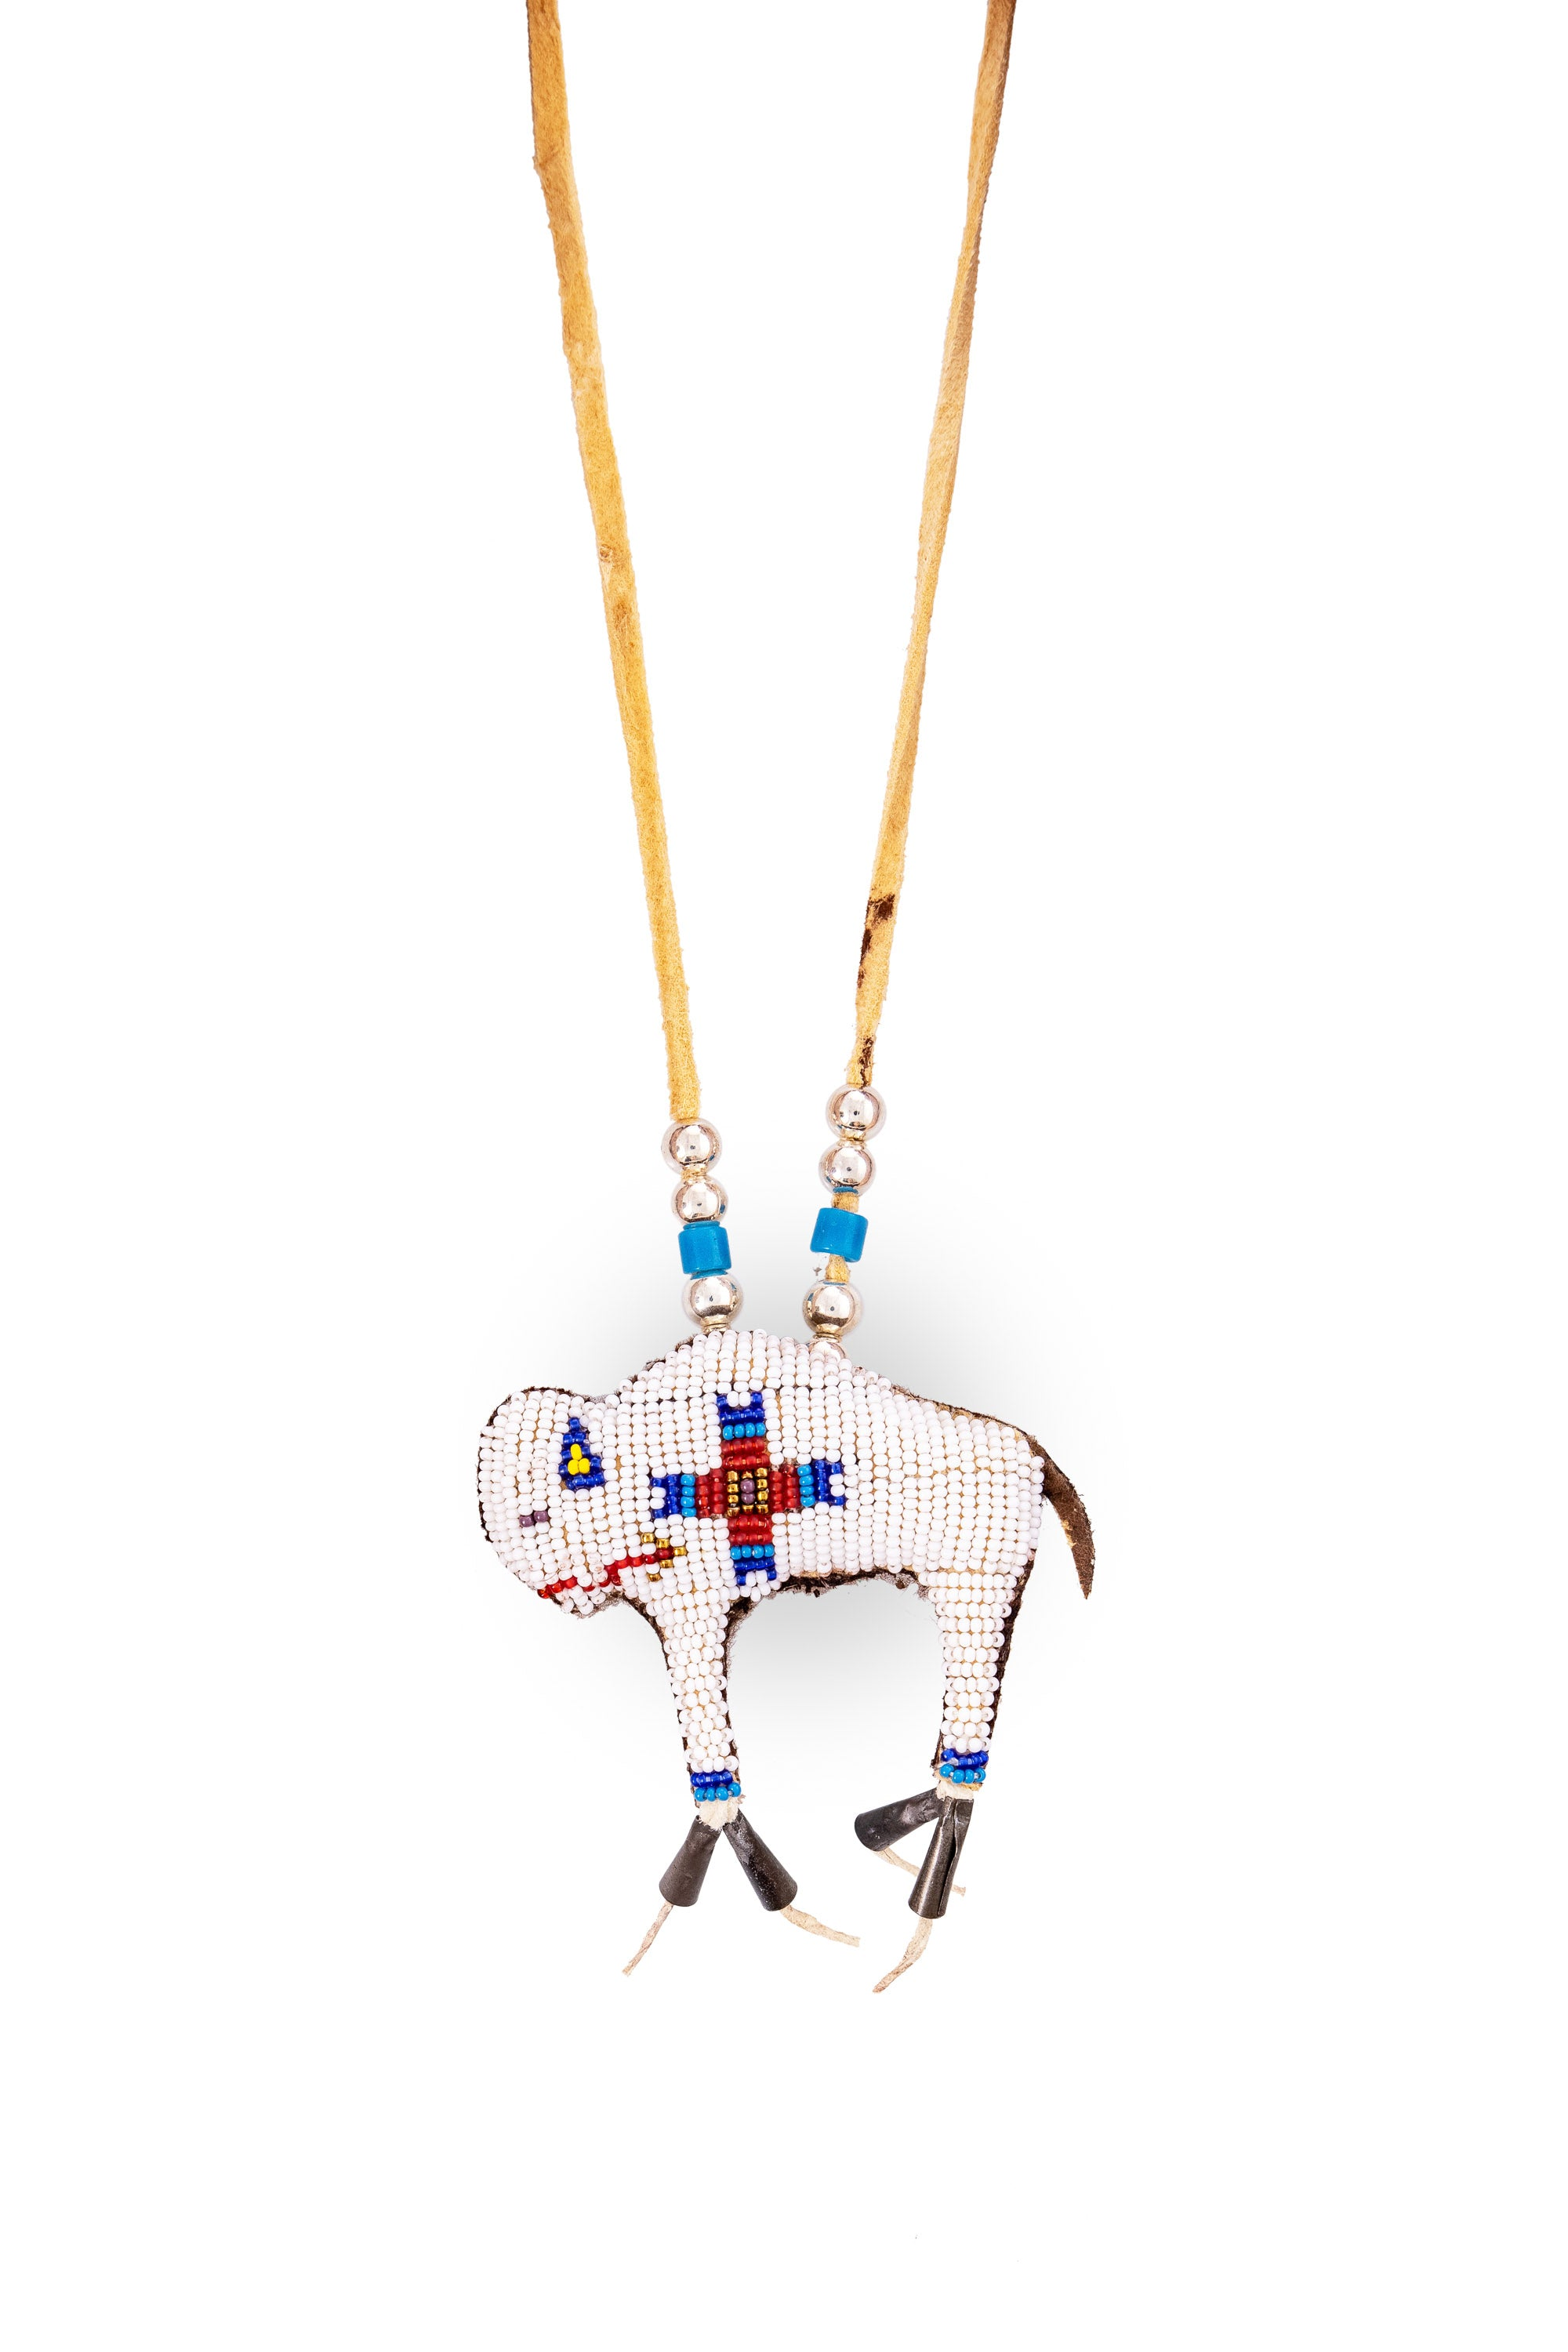 Necklace, Leather Thong, Amulet, White Buffalo, Dave Chavarria, Artisan, 1131